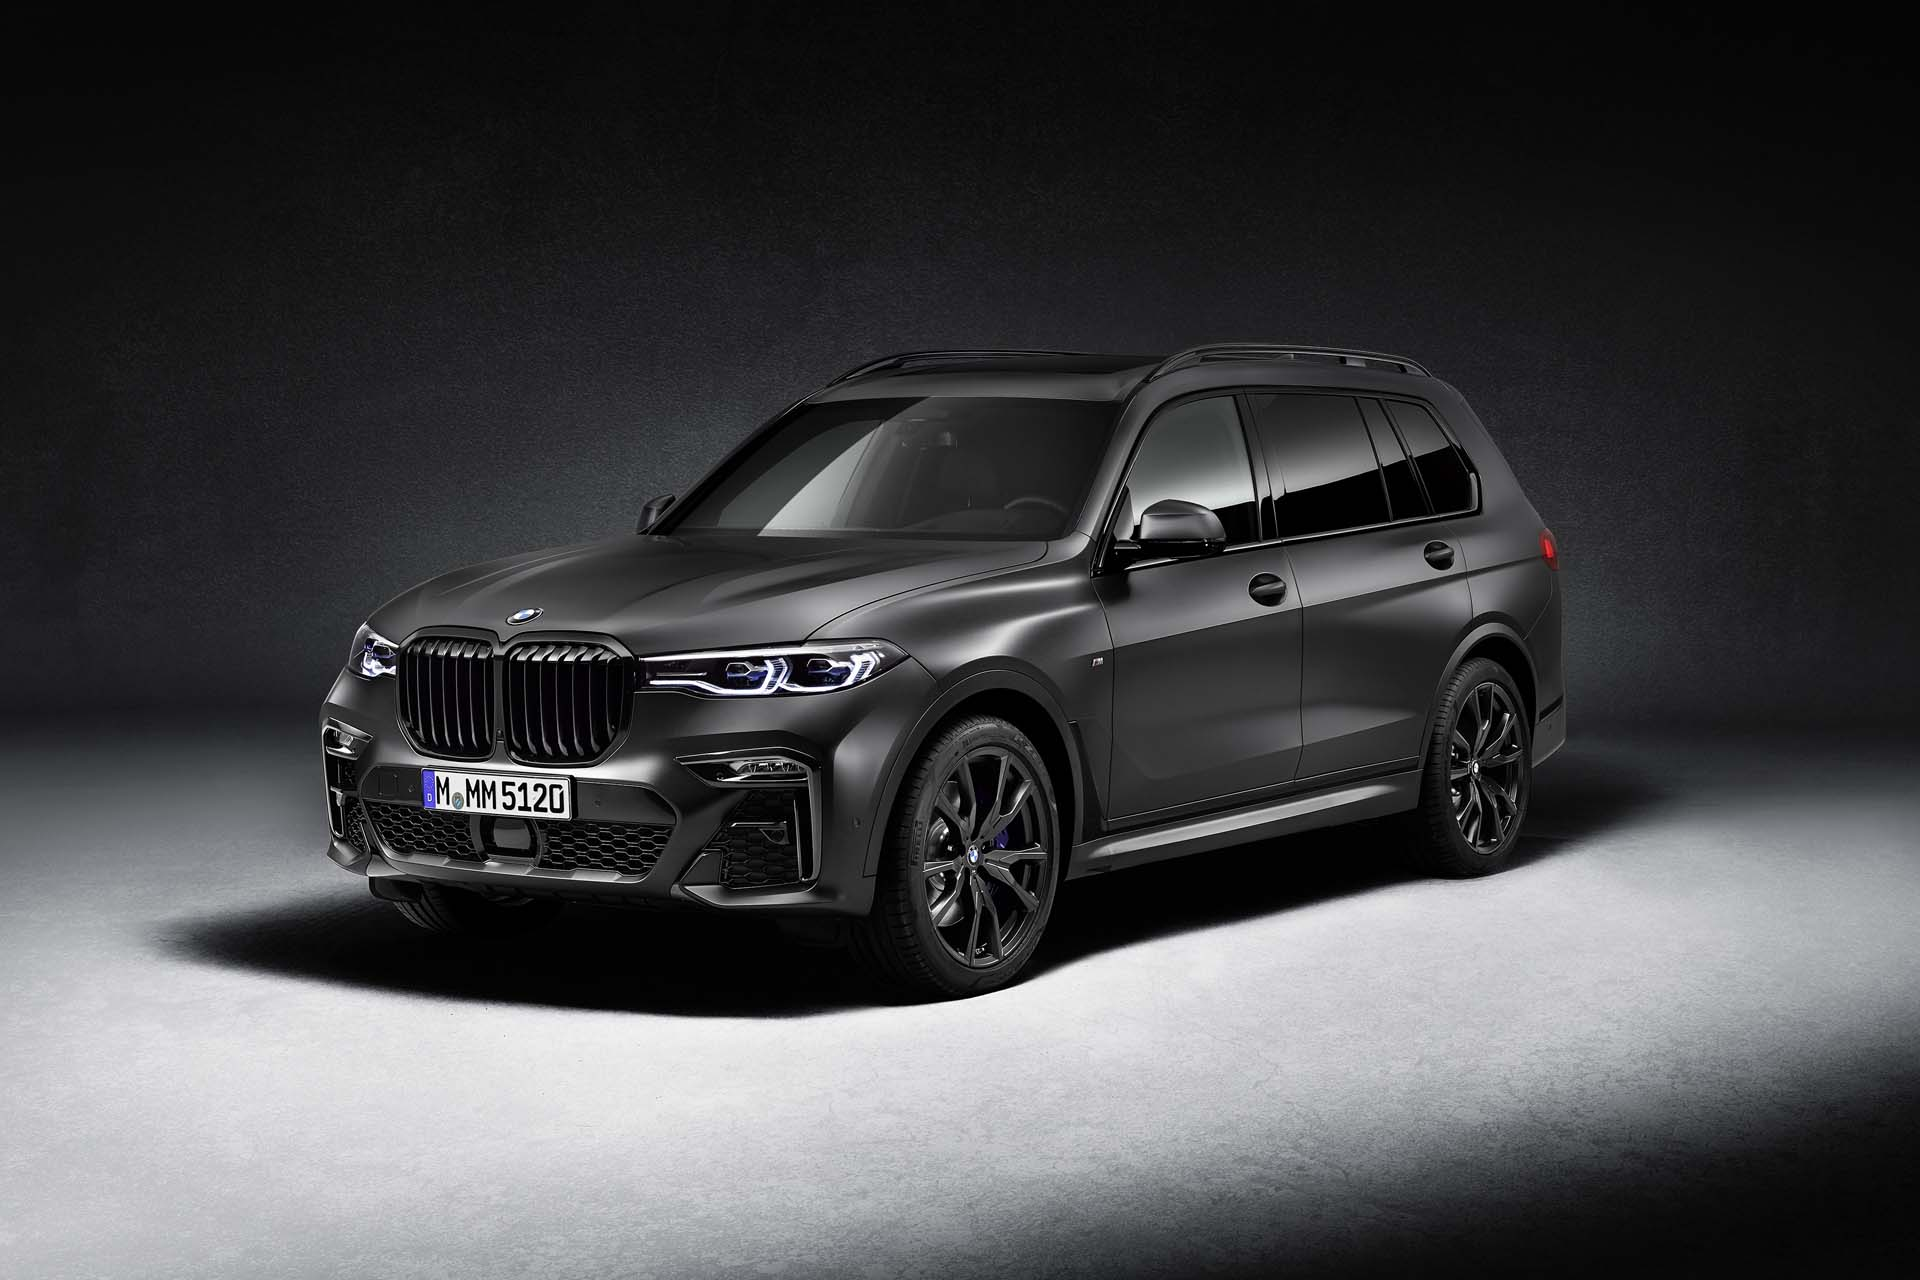 New And Used Bmw X7 Prices Photos Reviews Specs The Car Connection